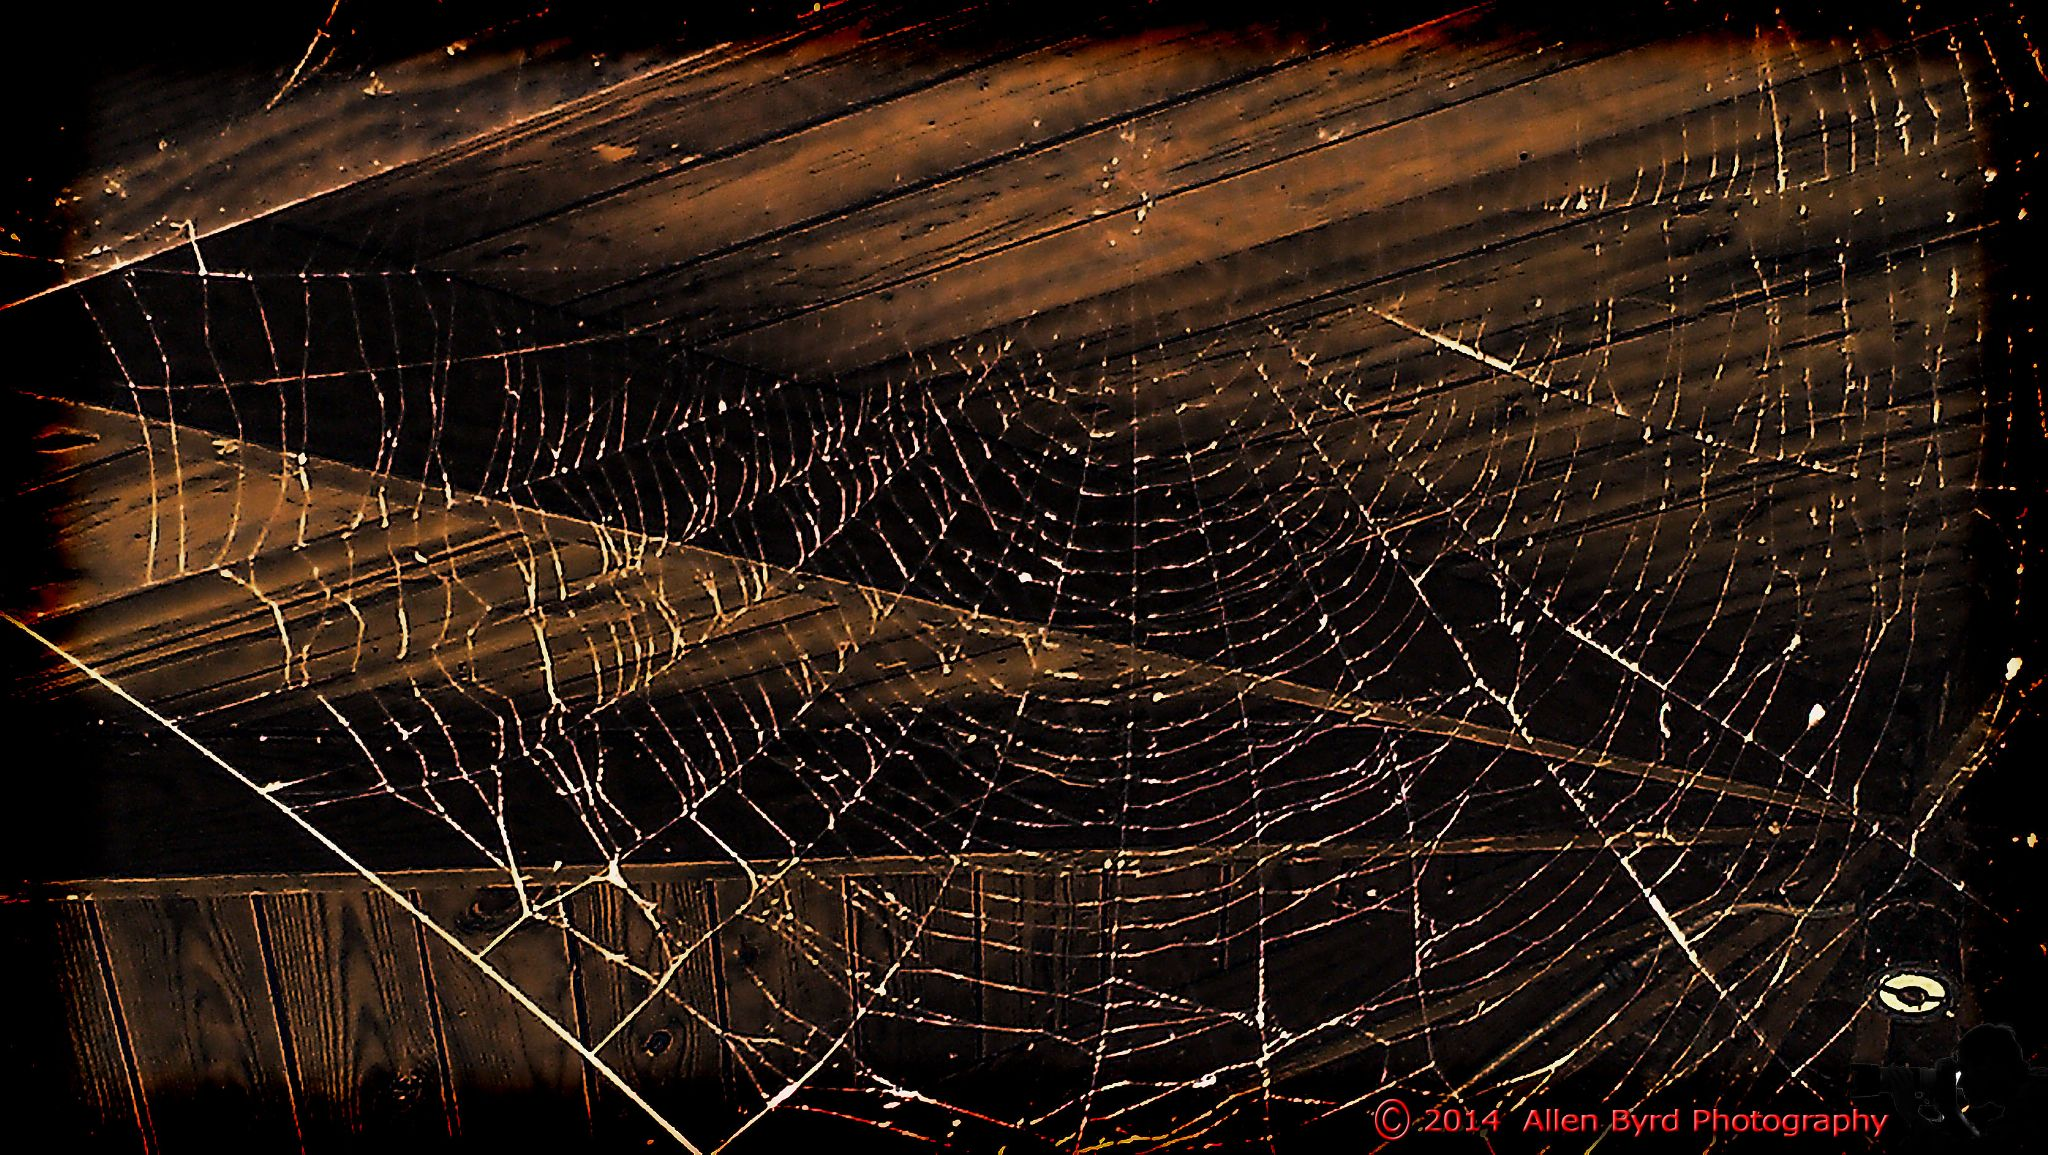 spideweb-1 by Allen Byrd Photography